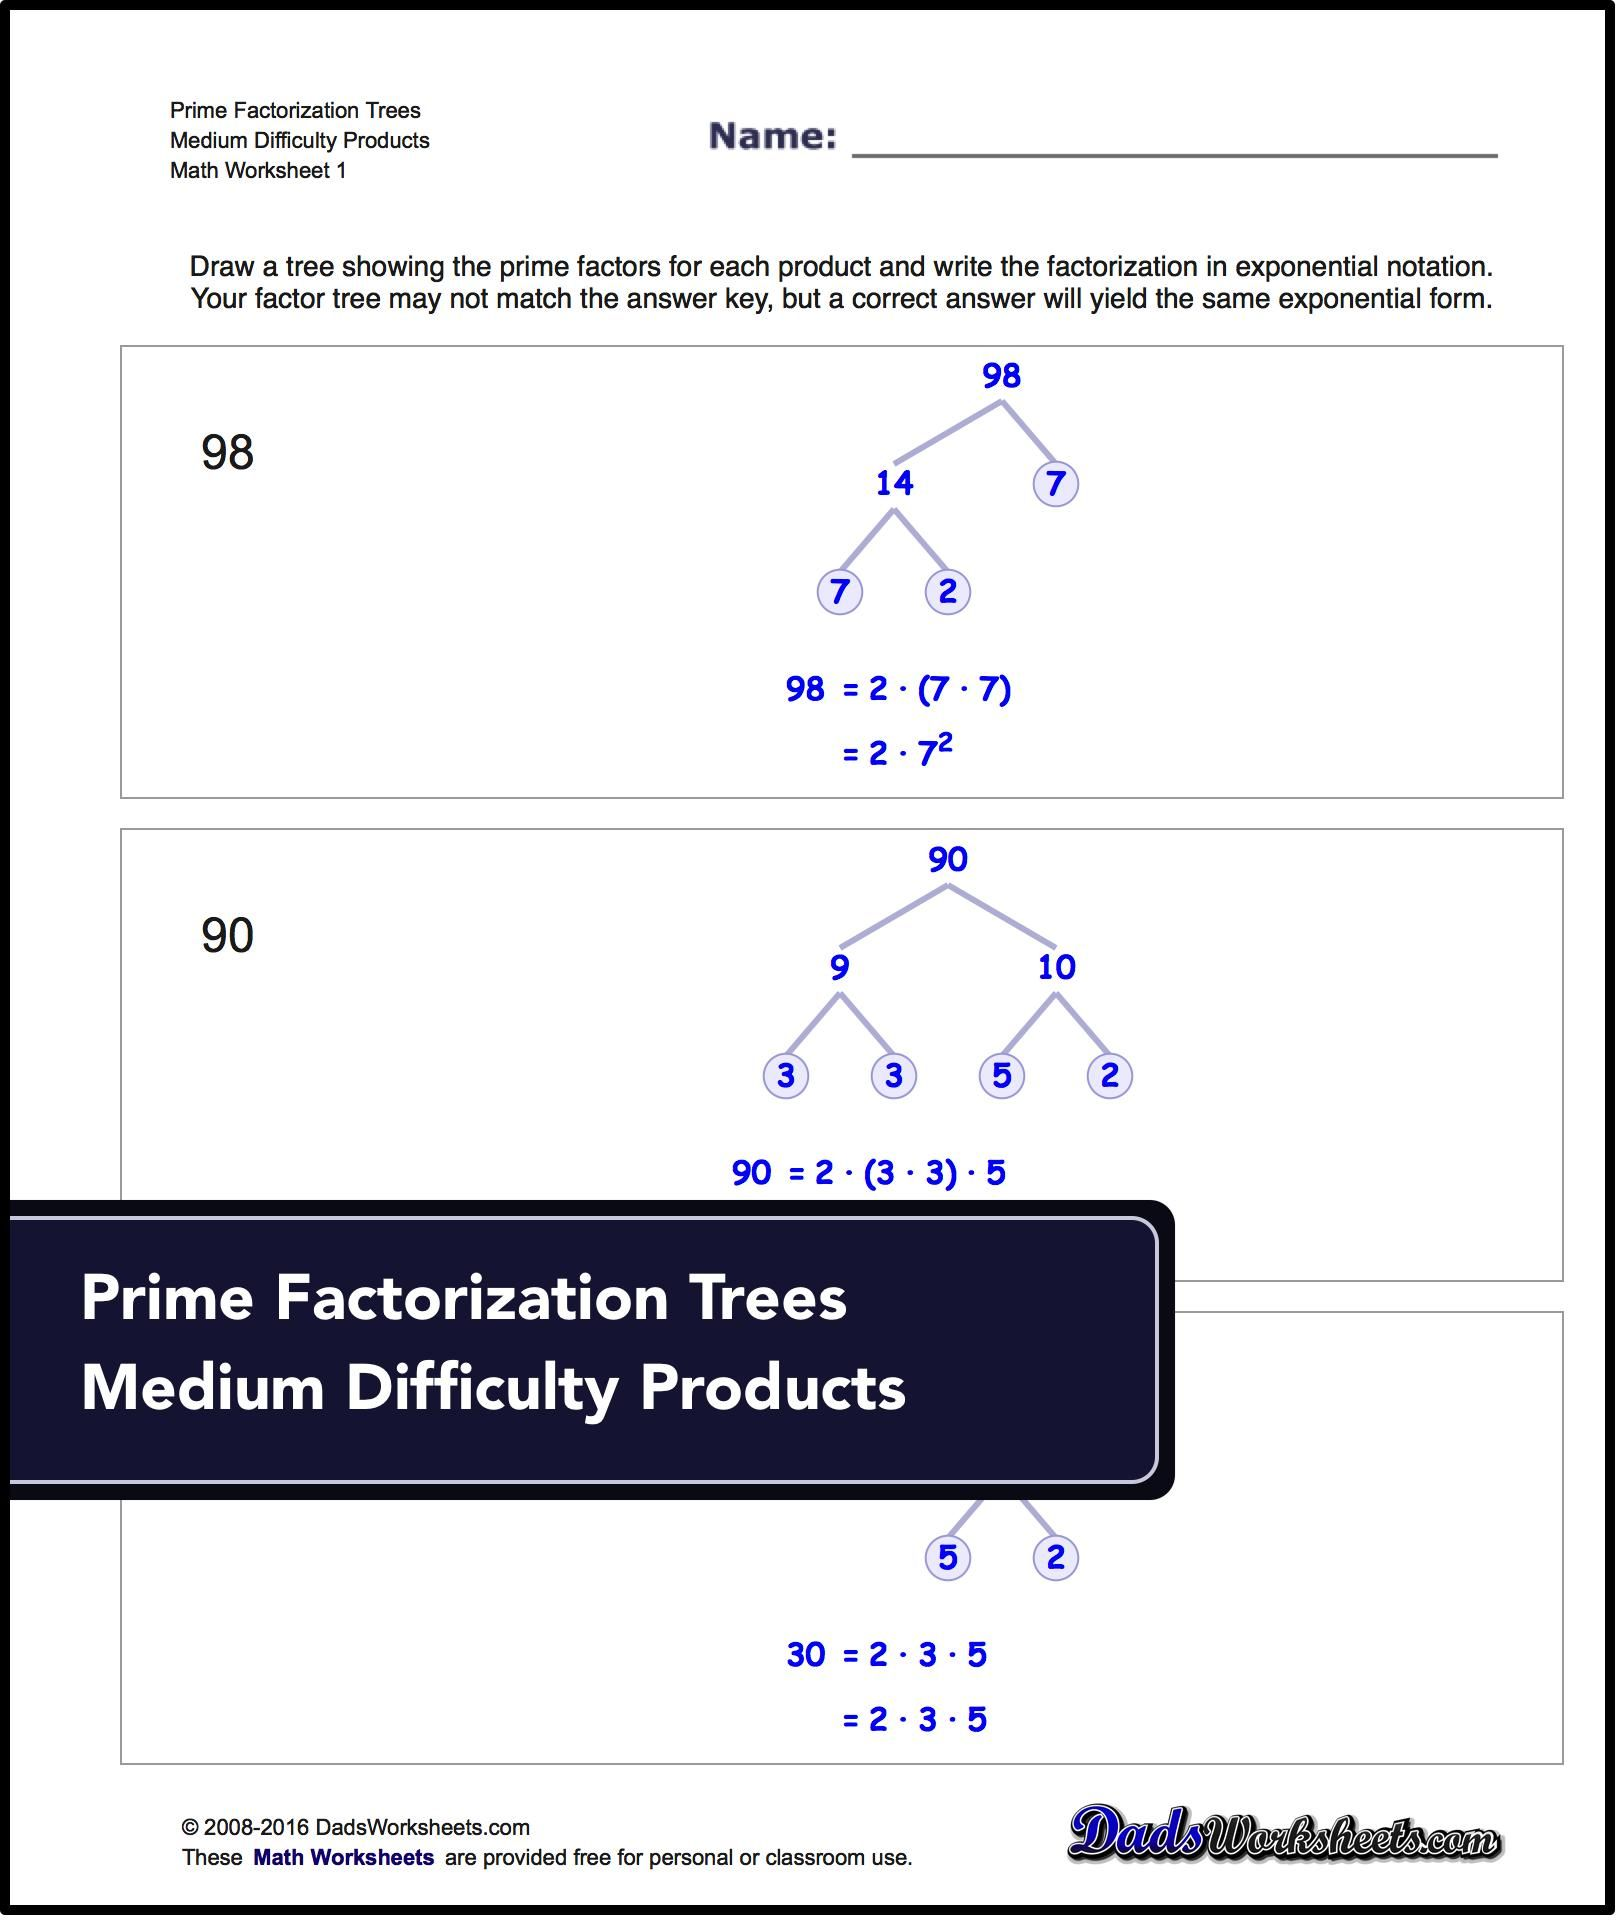 Factorization Gcd Lcm Prime Factorization These Worksheets Require Trees To Determine The